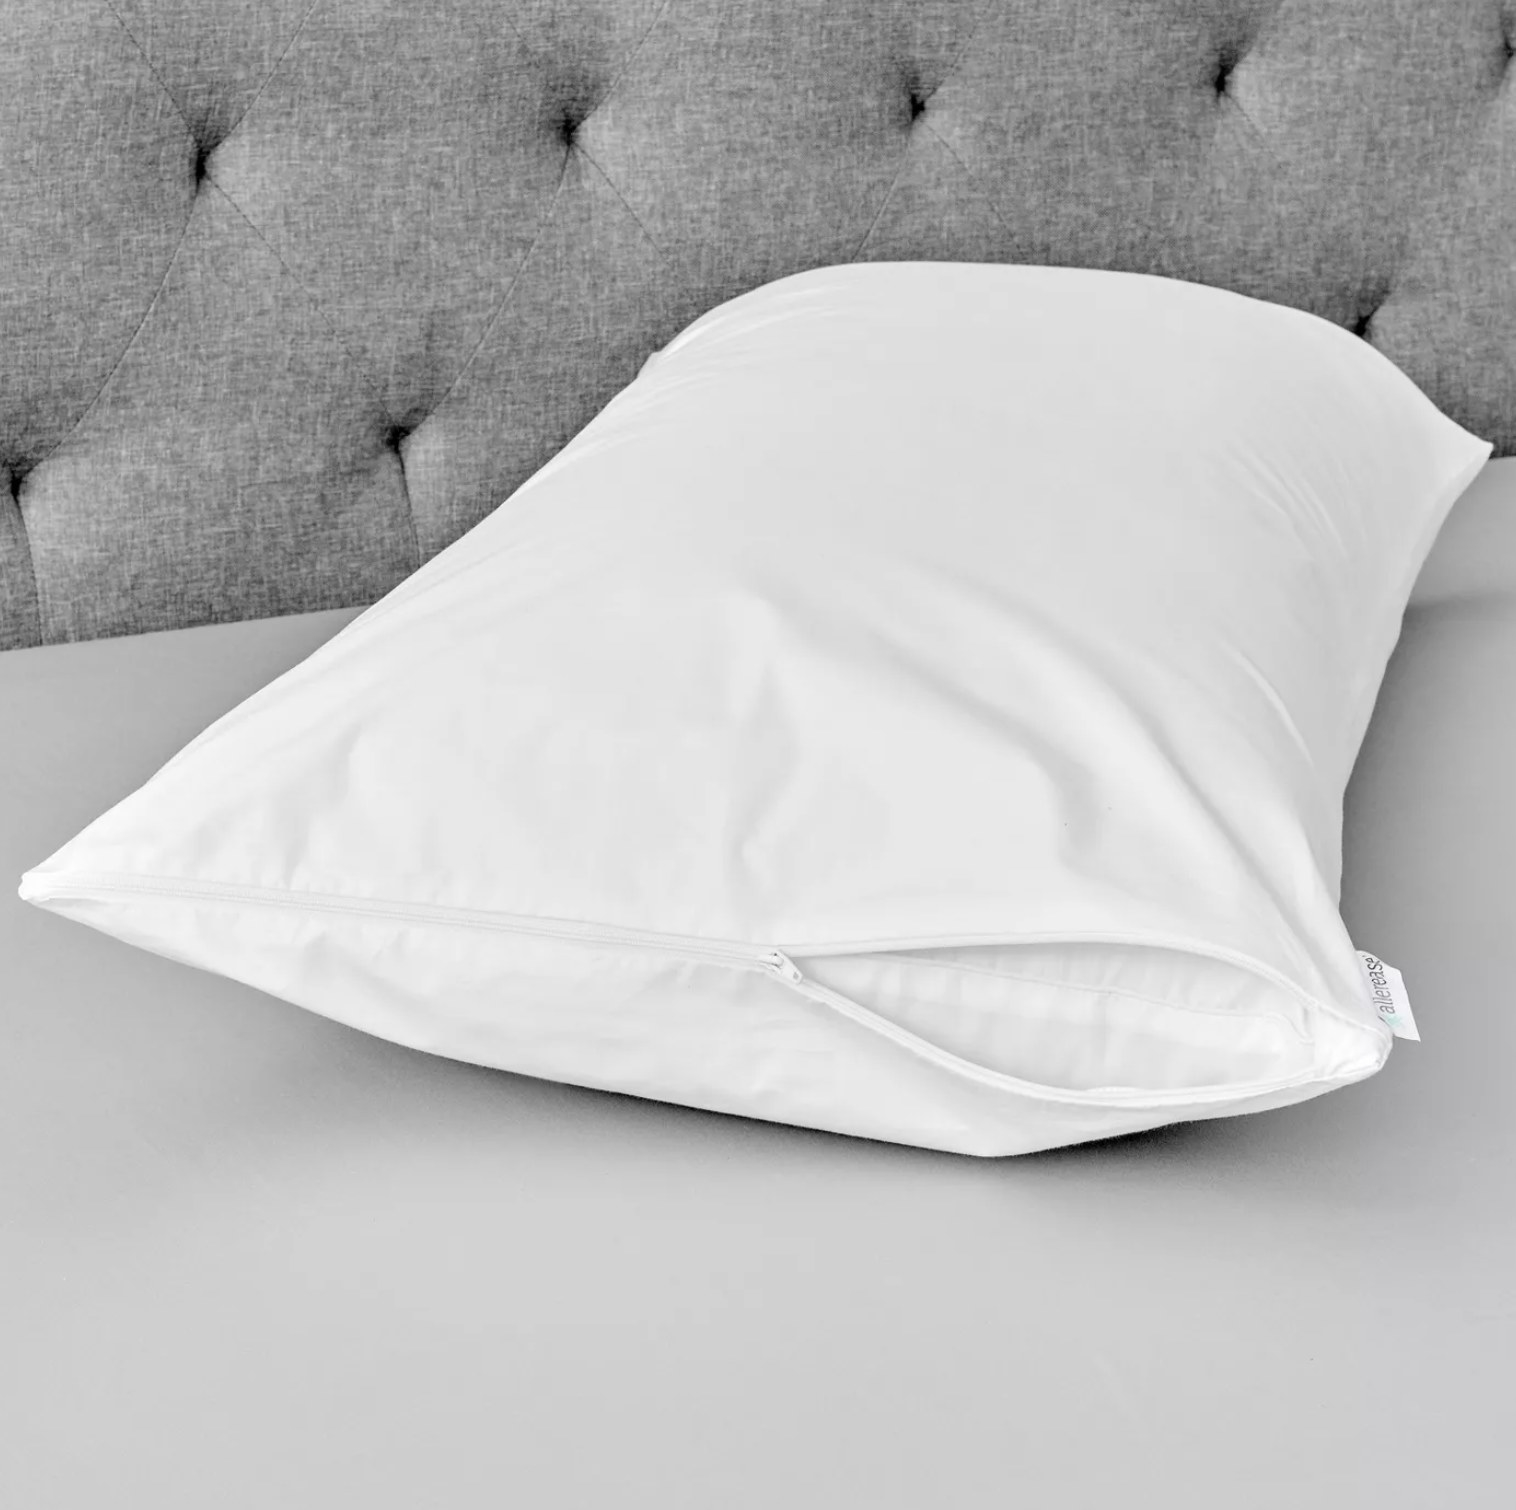 the pillow protector on a pillow